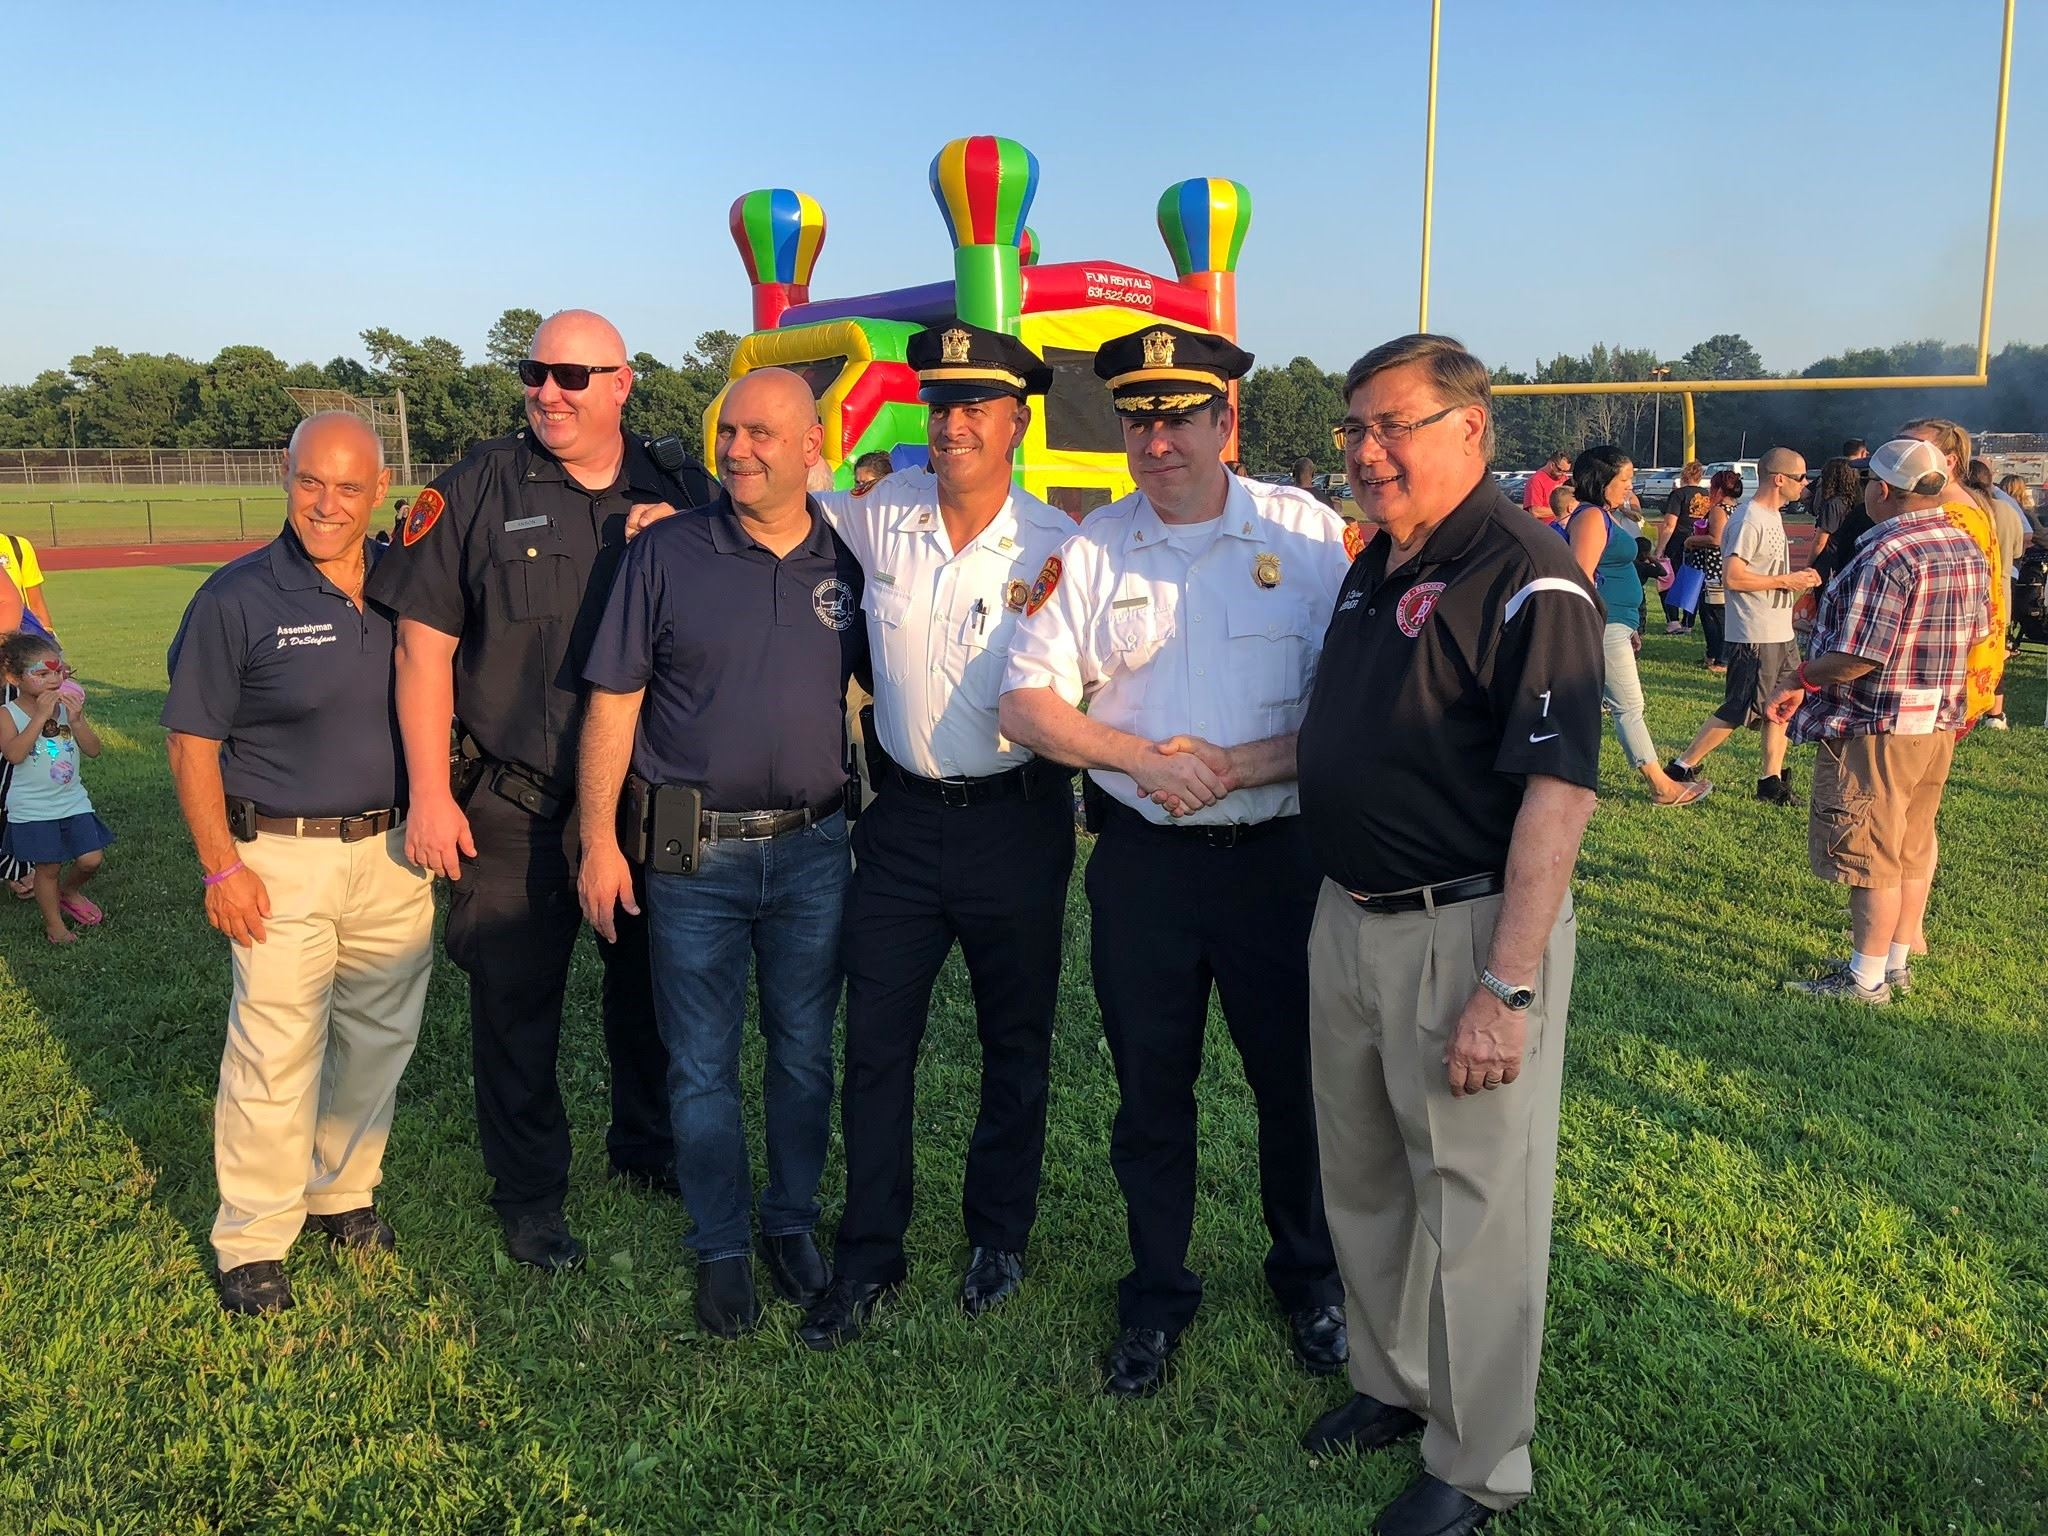 William Floyd National Night Out group photo